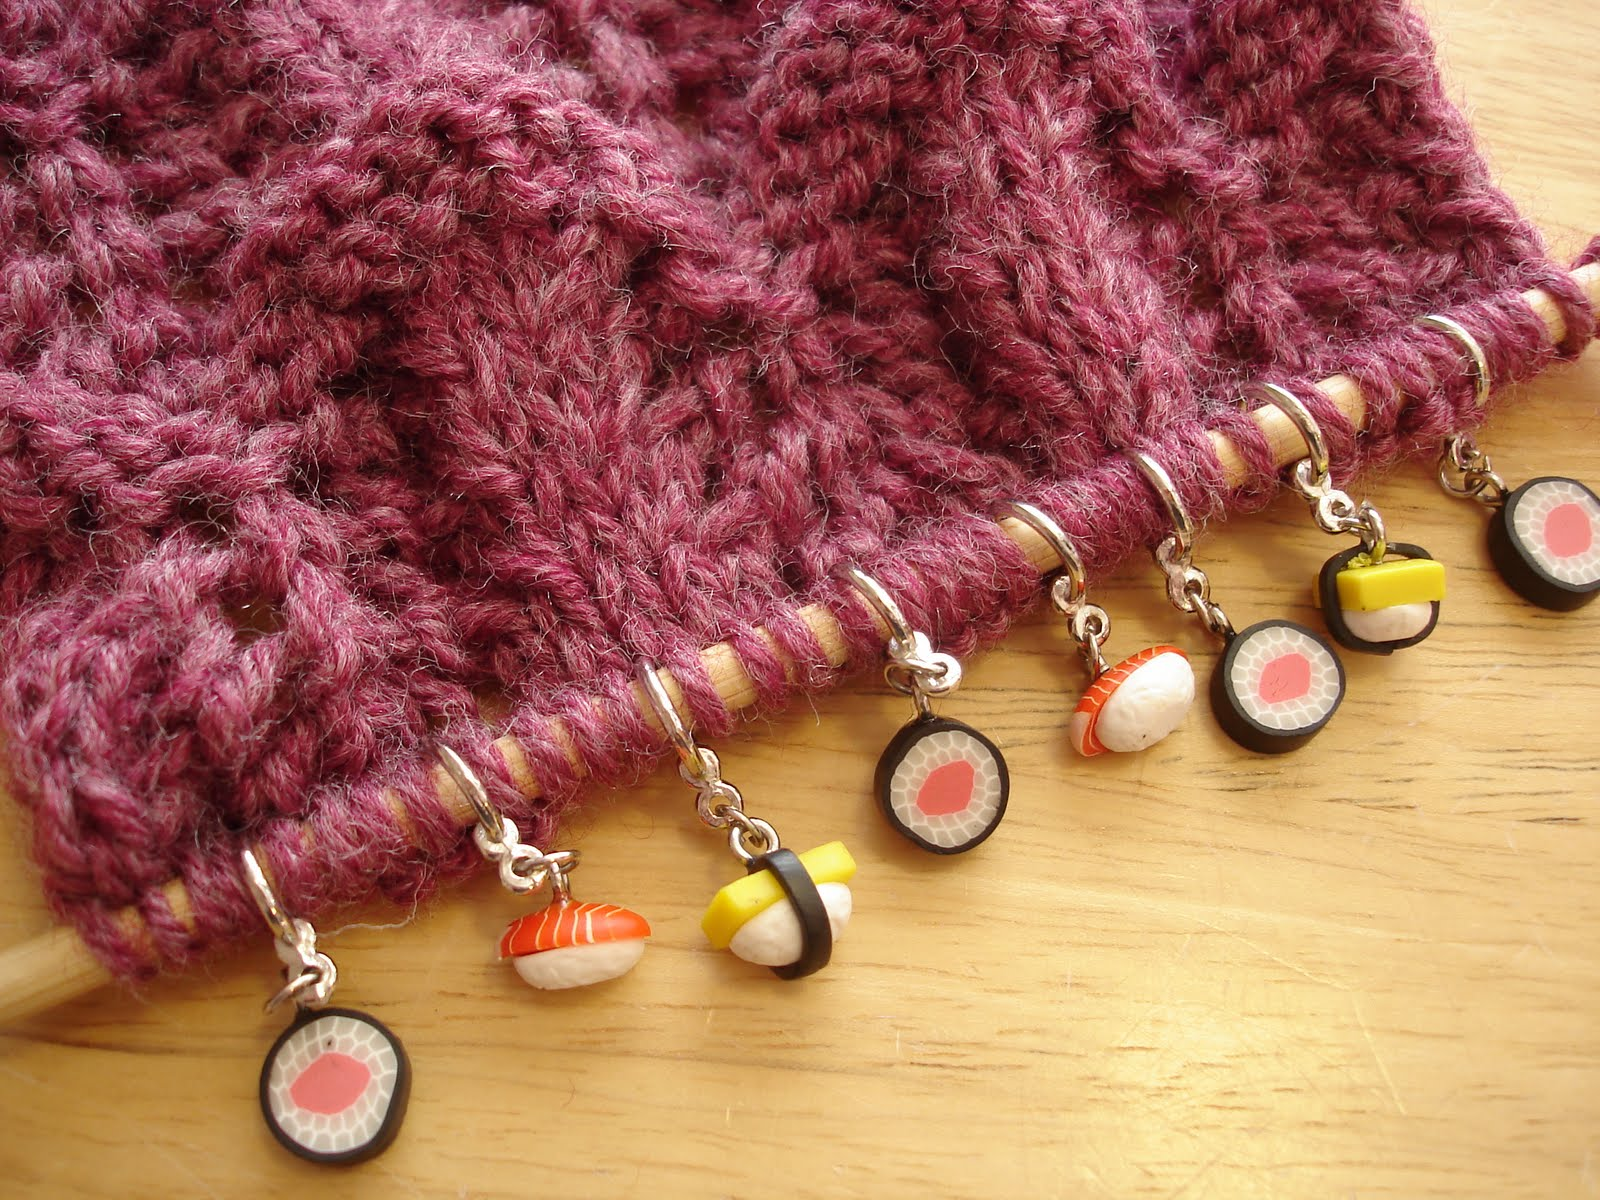 Knitting Stitch Markers How To Make : Fiber flux recycled jewelry stitch markers